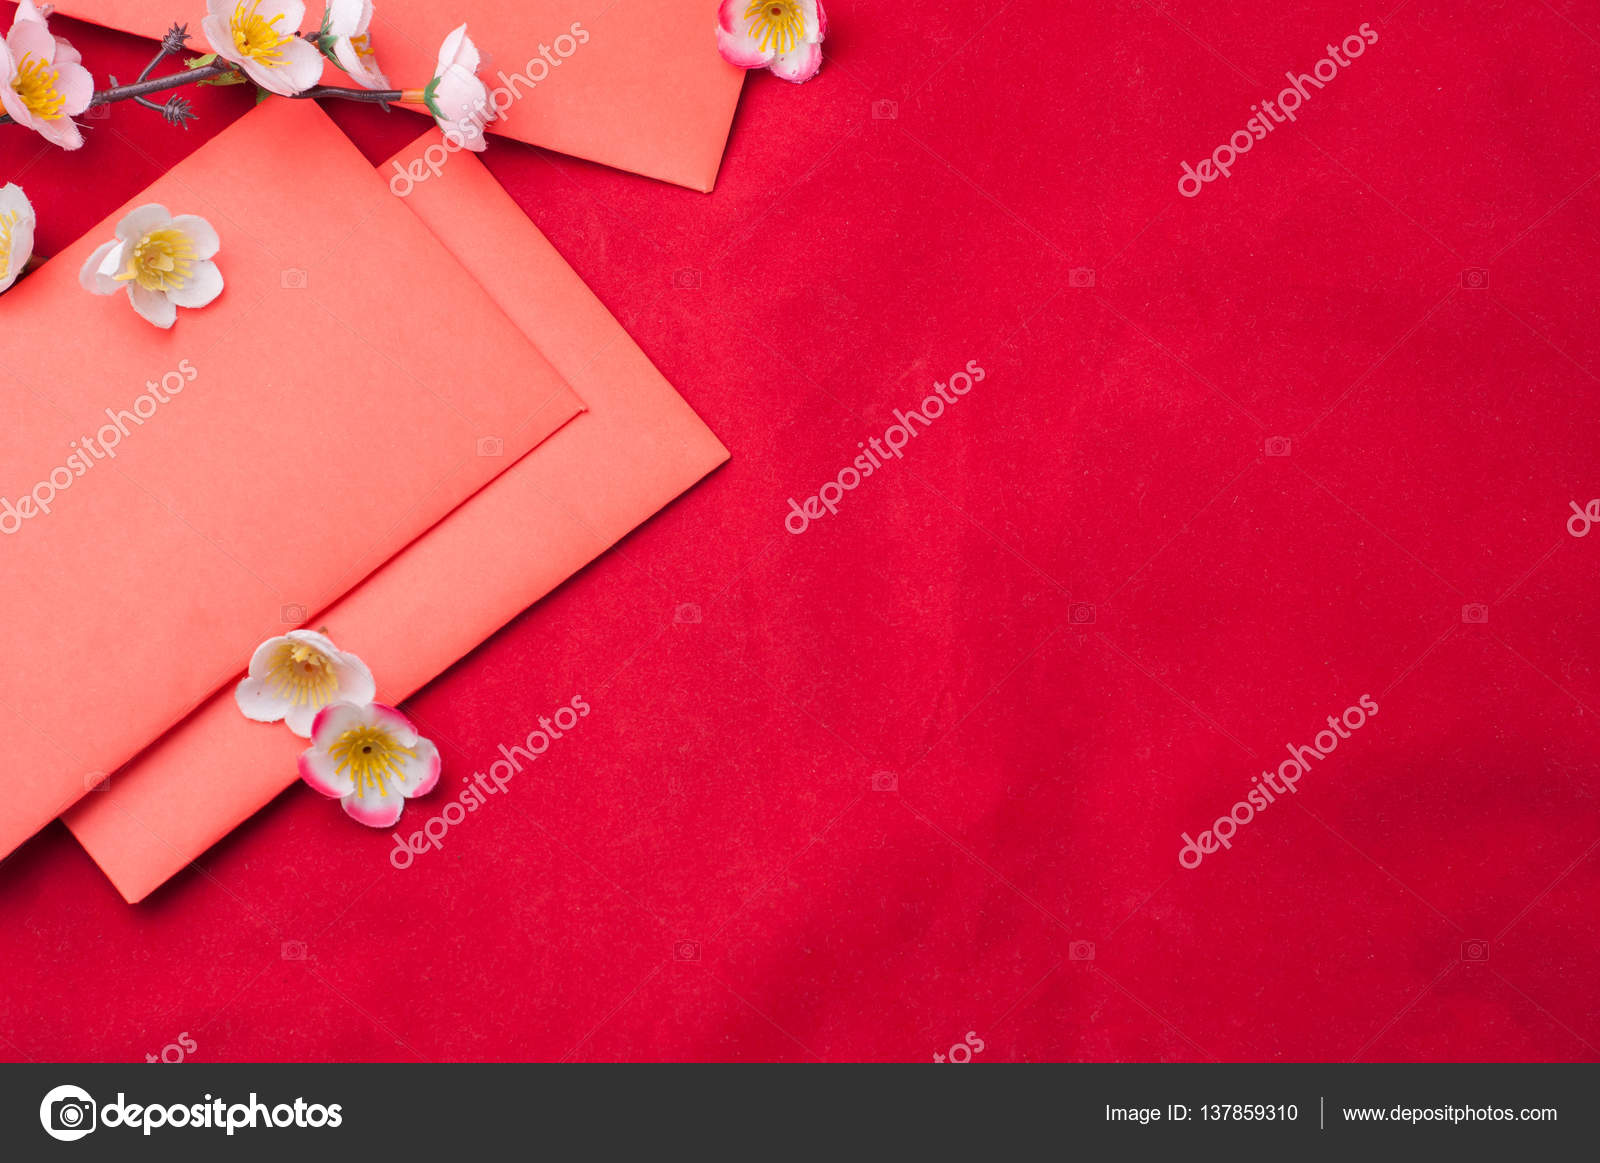 celebrate chinese new year background with red envelope and beautiful blossom flower photo by awaygy